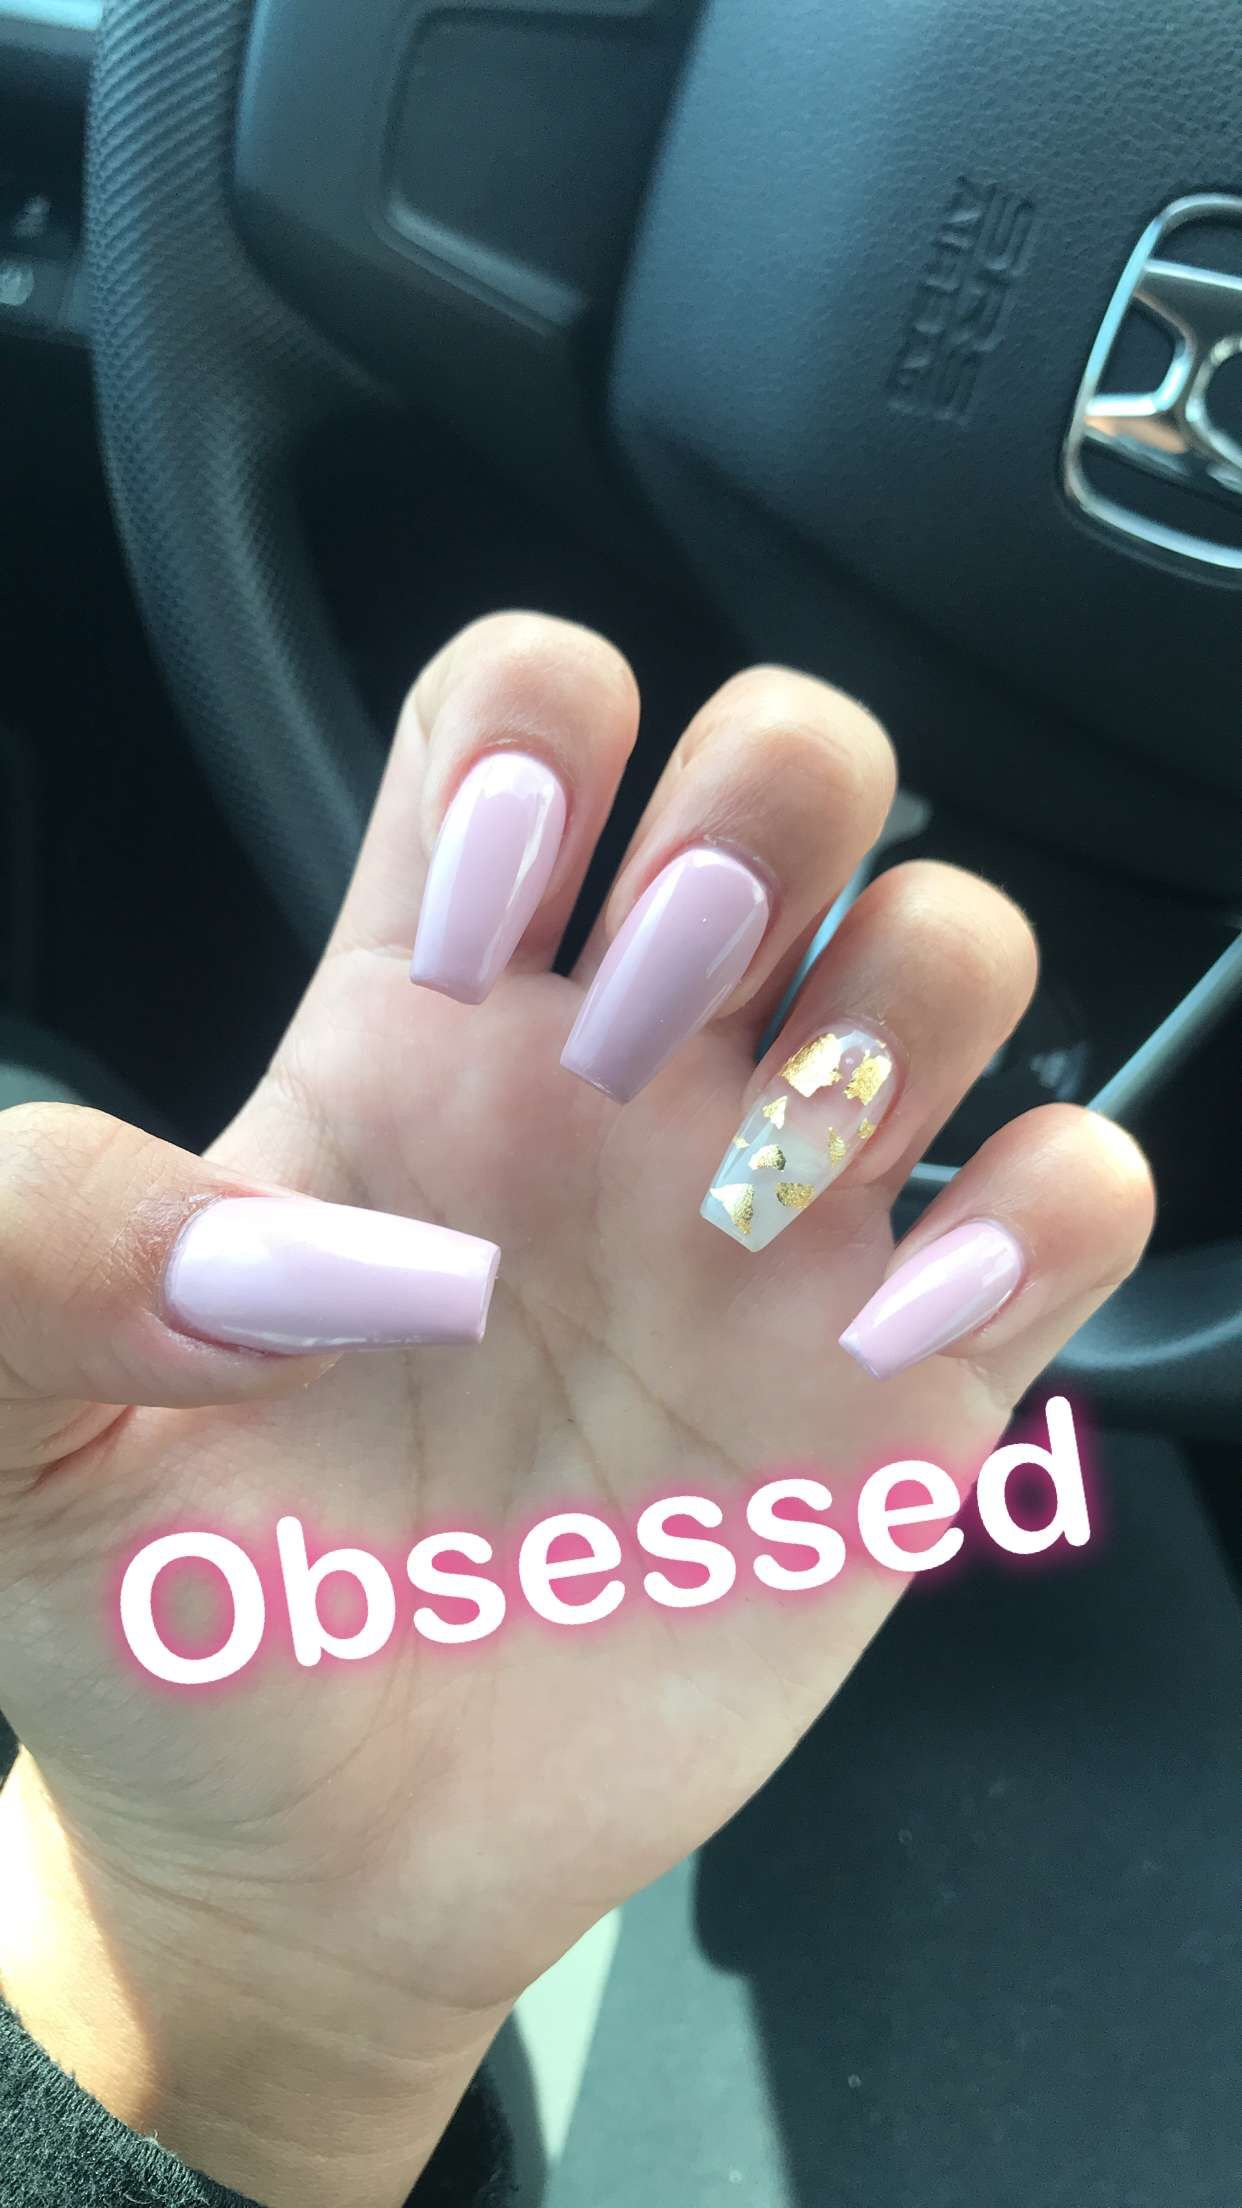 Nails 174 VIP Vogue pro nails and spa by RANDY. | n a i l s ...